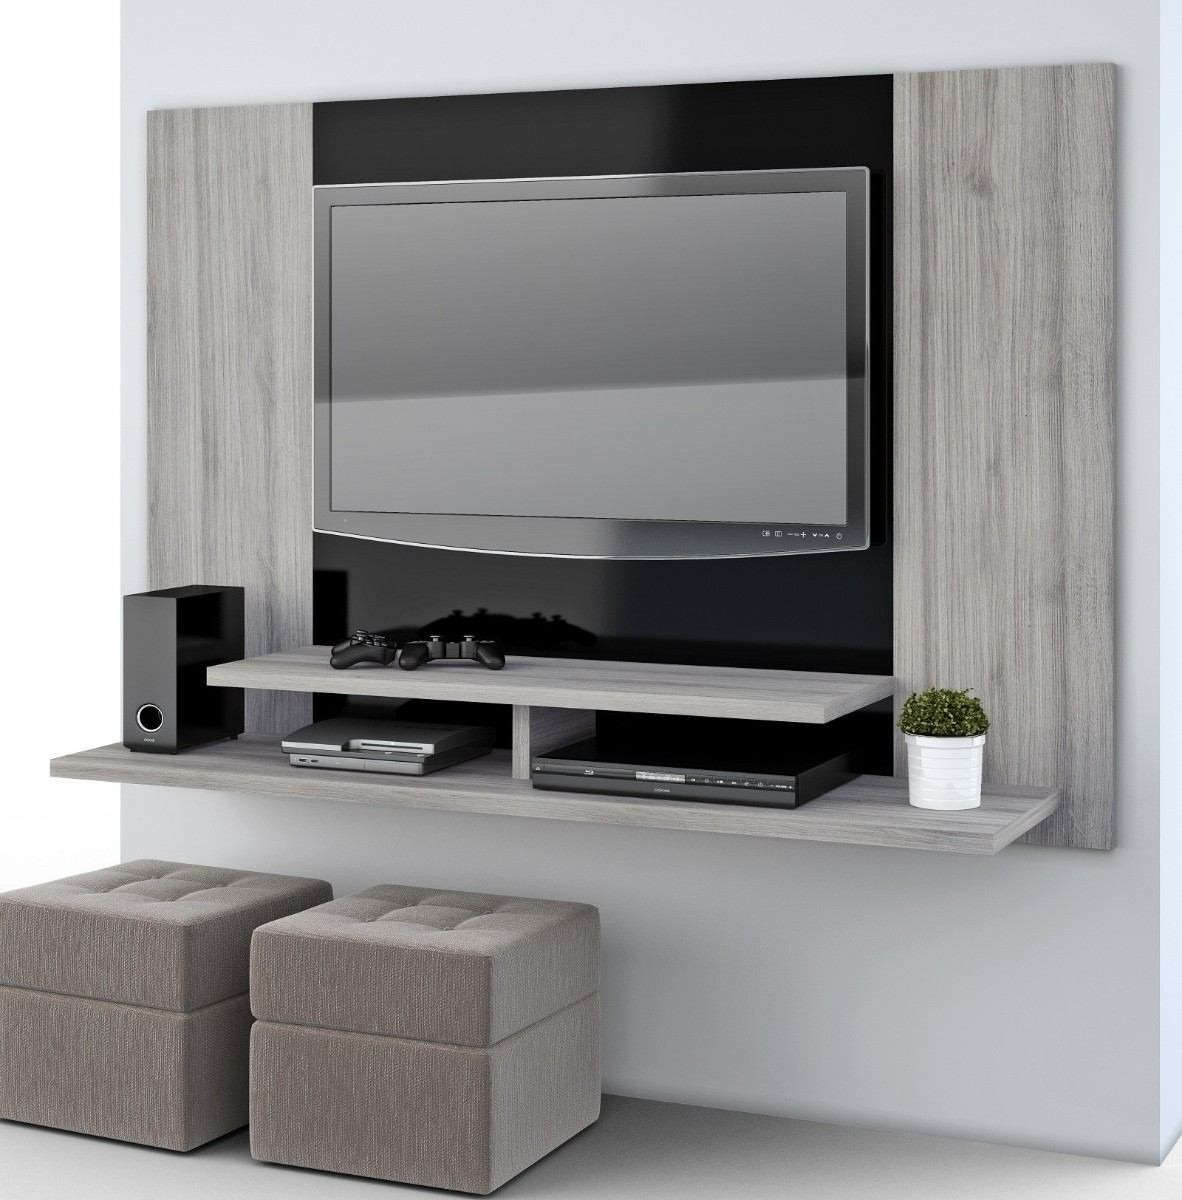 mueble flotante para tv moderno ref manhatan On muebles para television